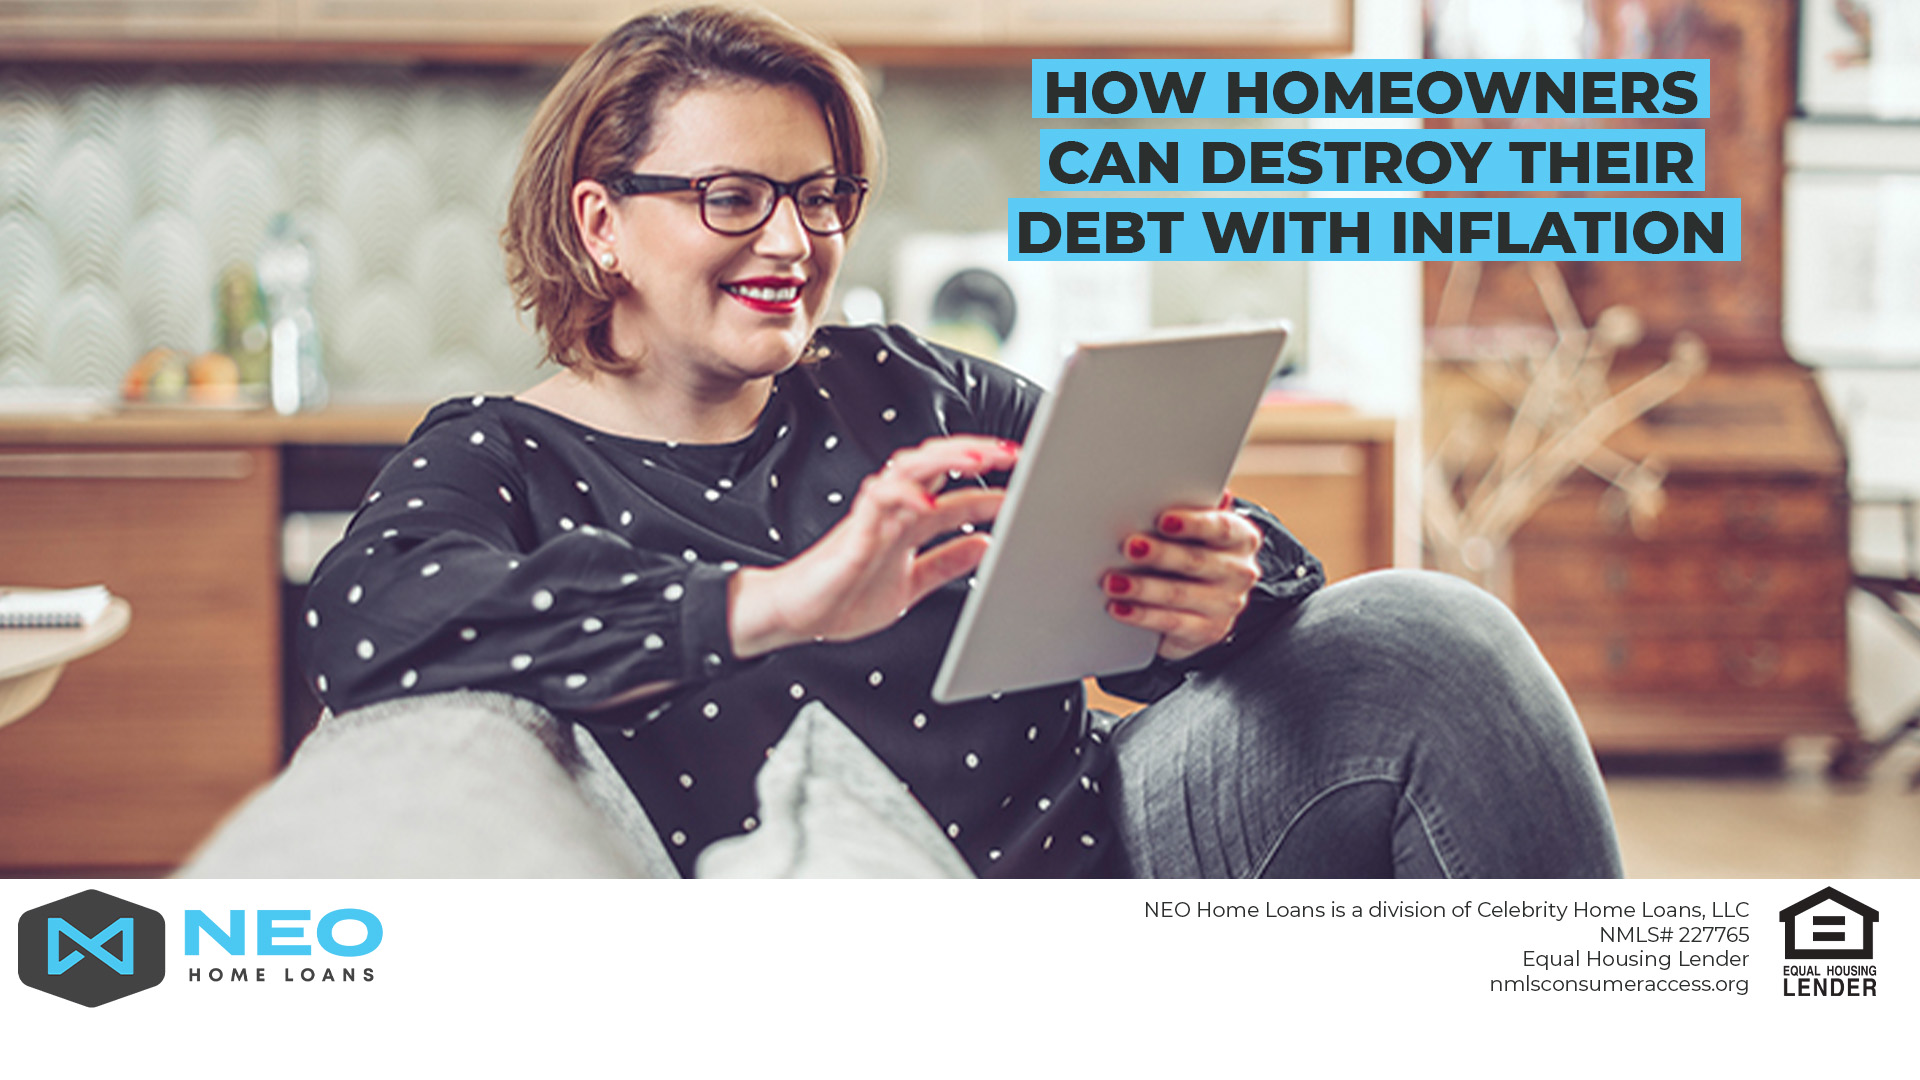 How Homeowners Can Destroy Their Debt With Inflation